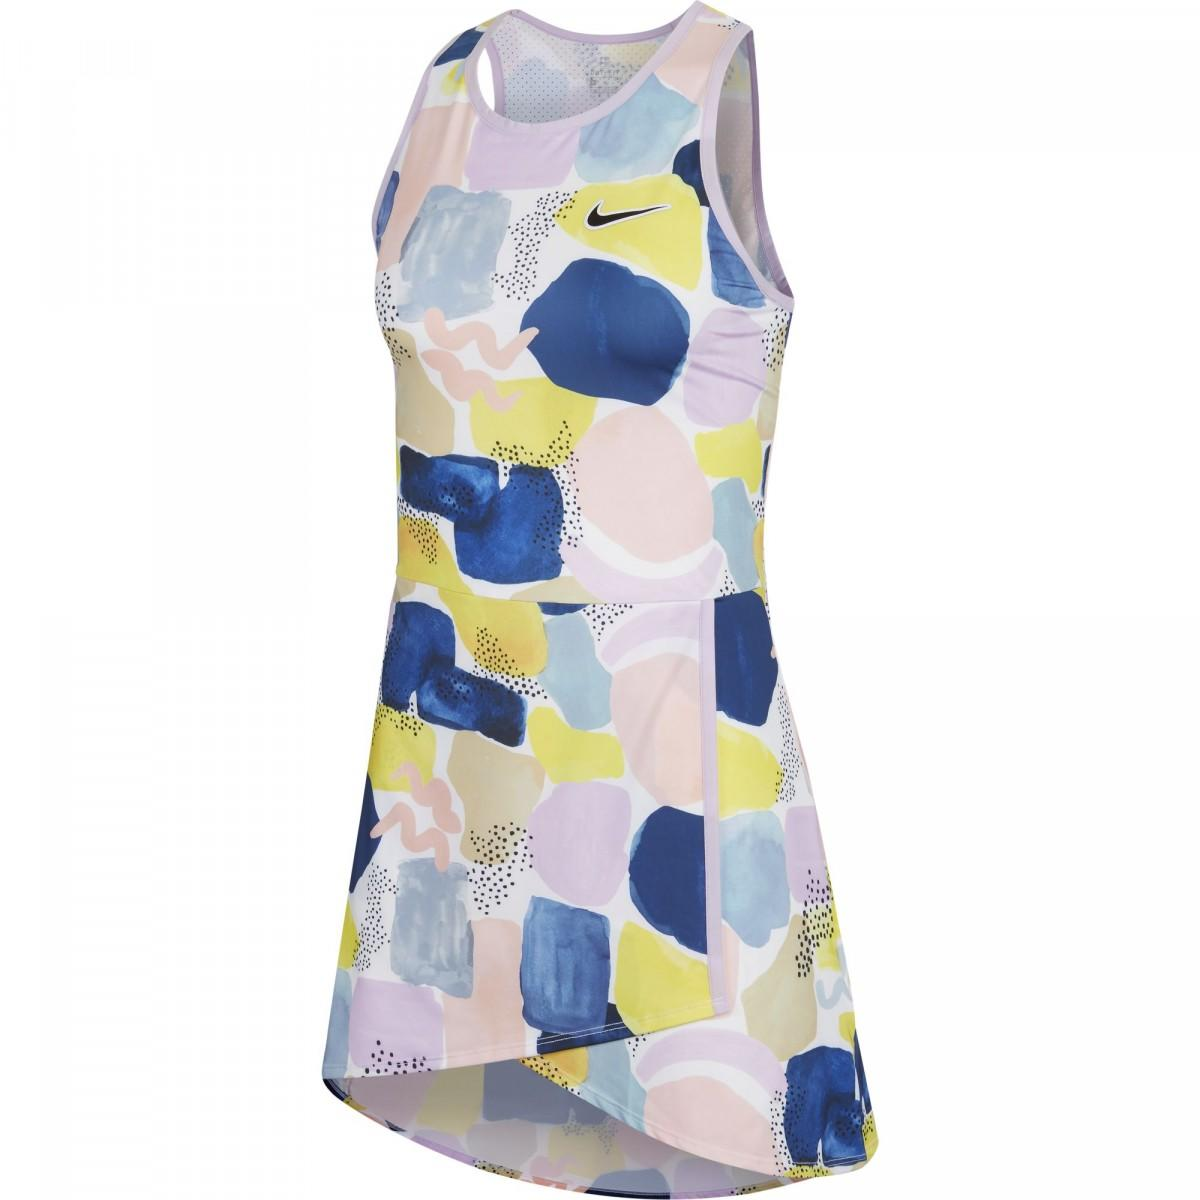 Теннисное платье женское Nike Court Team Dress Melbourne W lilac mist/off noir